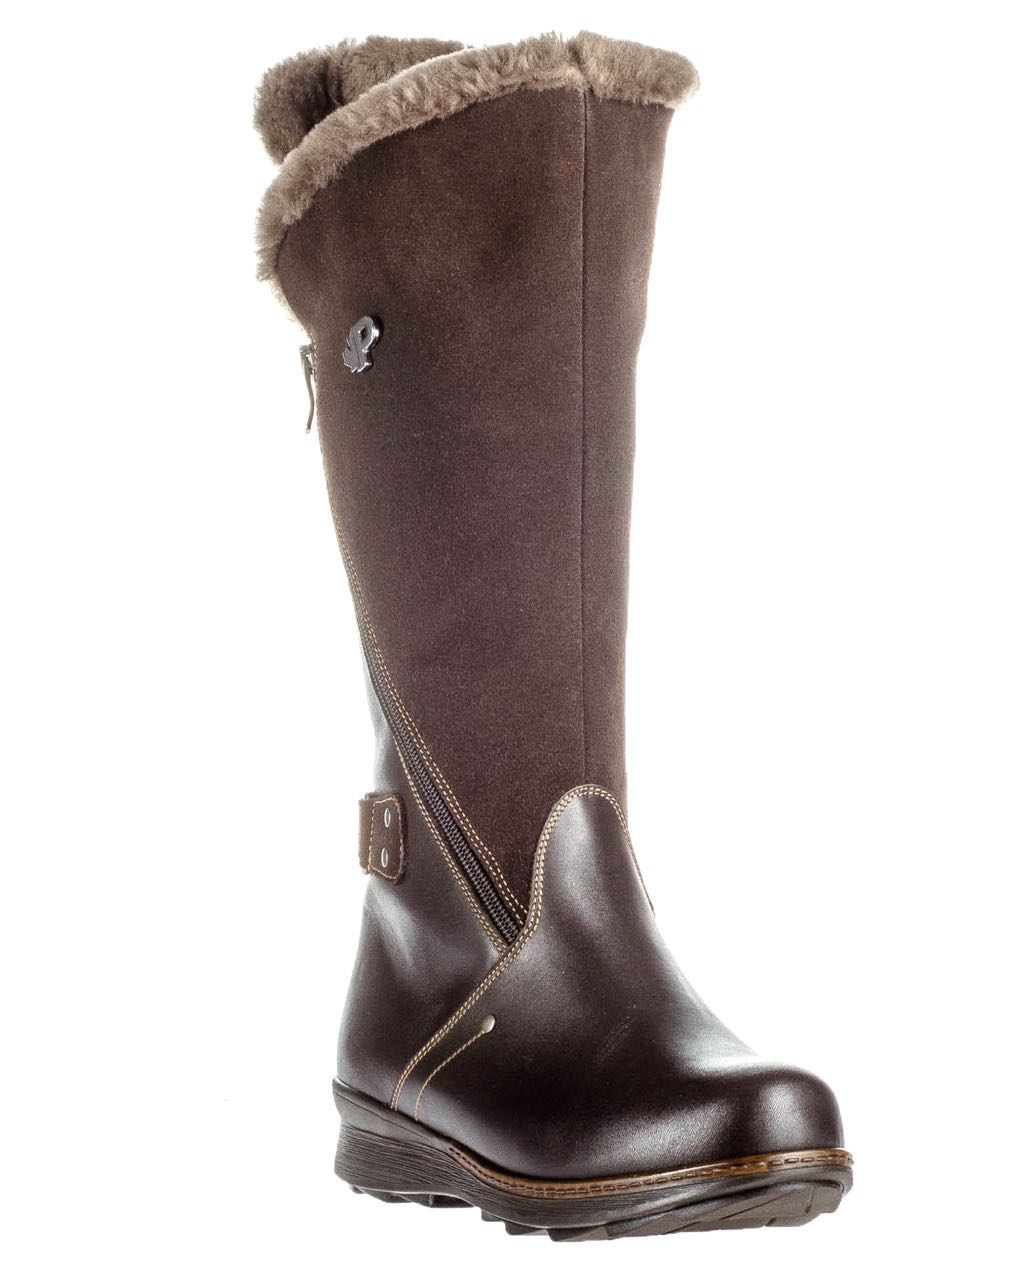 Pajar Winter Leather Boots LONDON Brown | Heritage